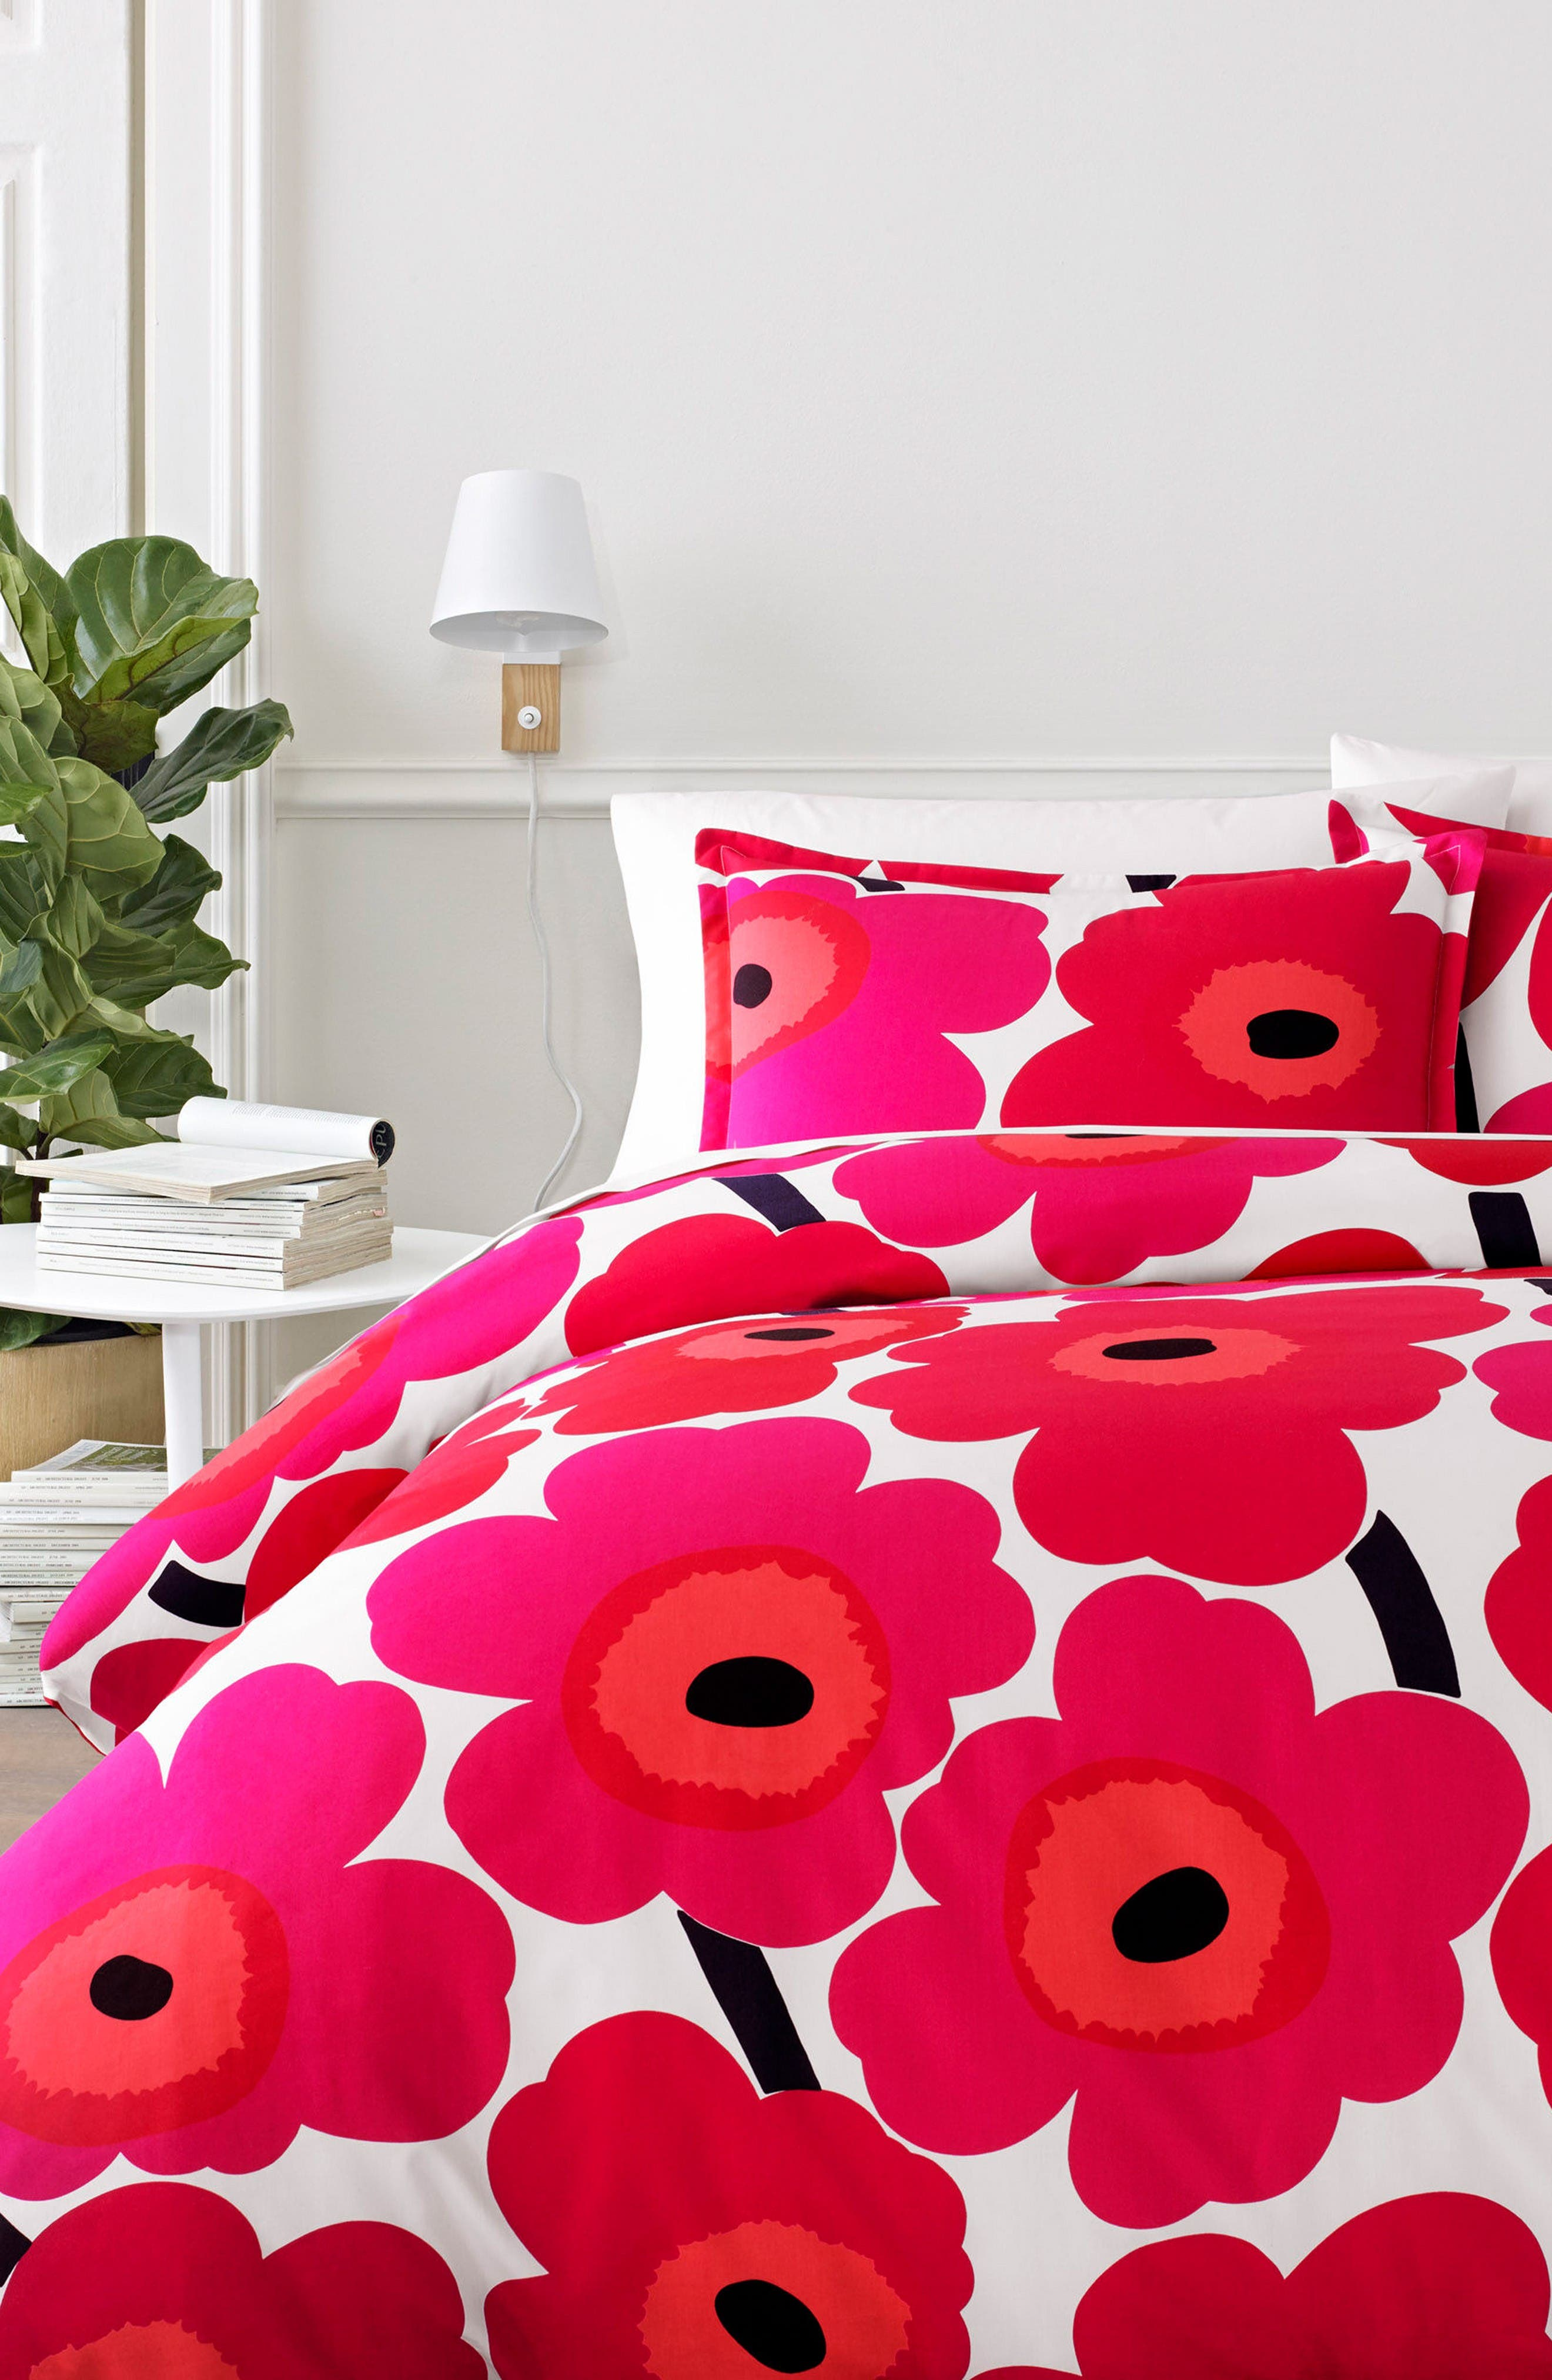 Alternate Image 1 Selected - Marimekko Unikko Comforter & Sham Set